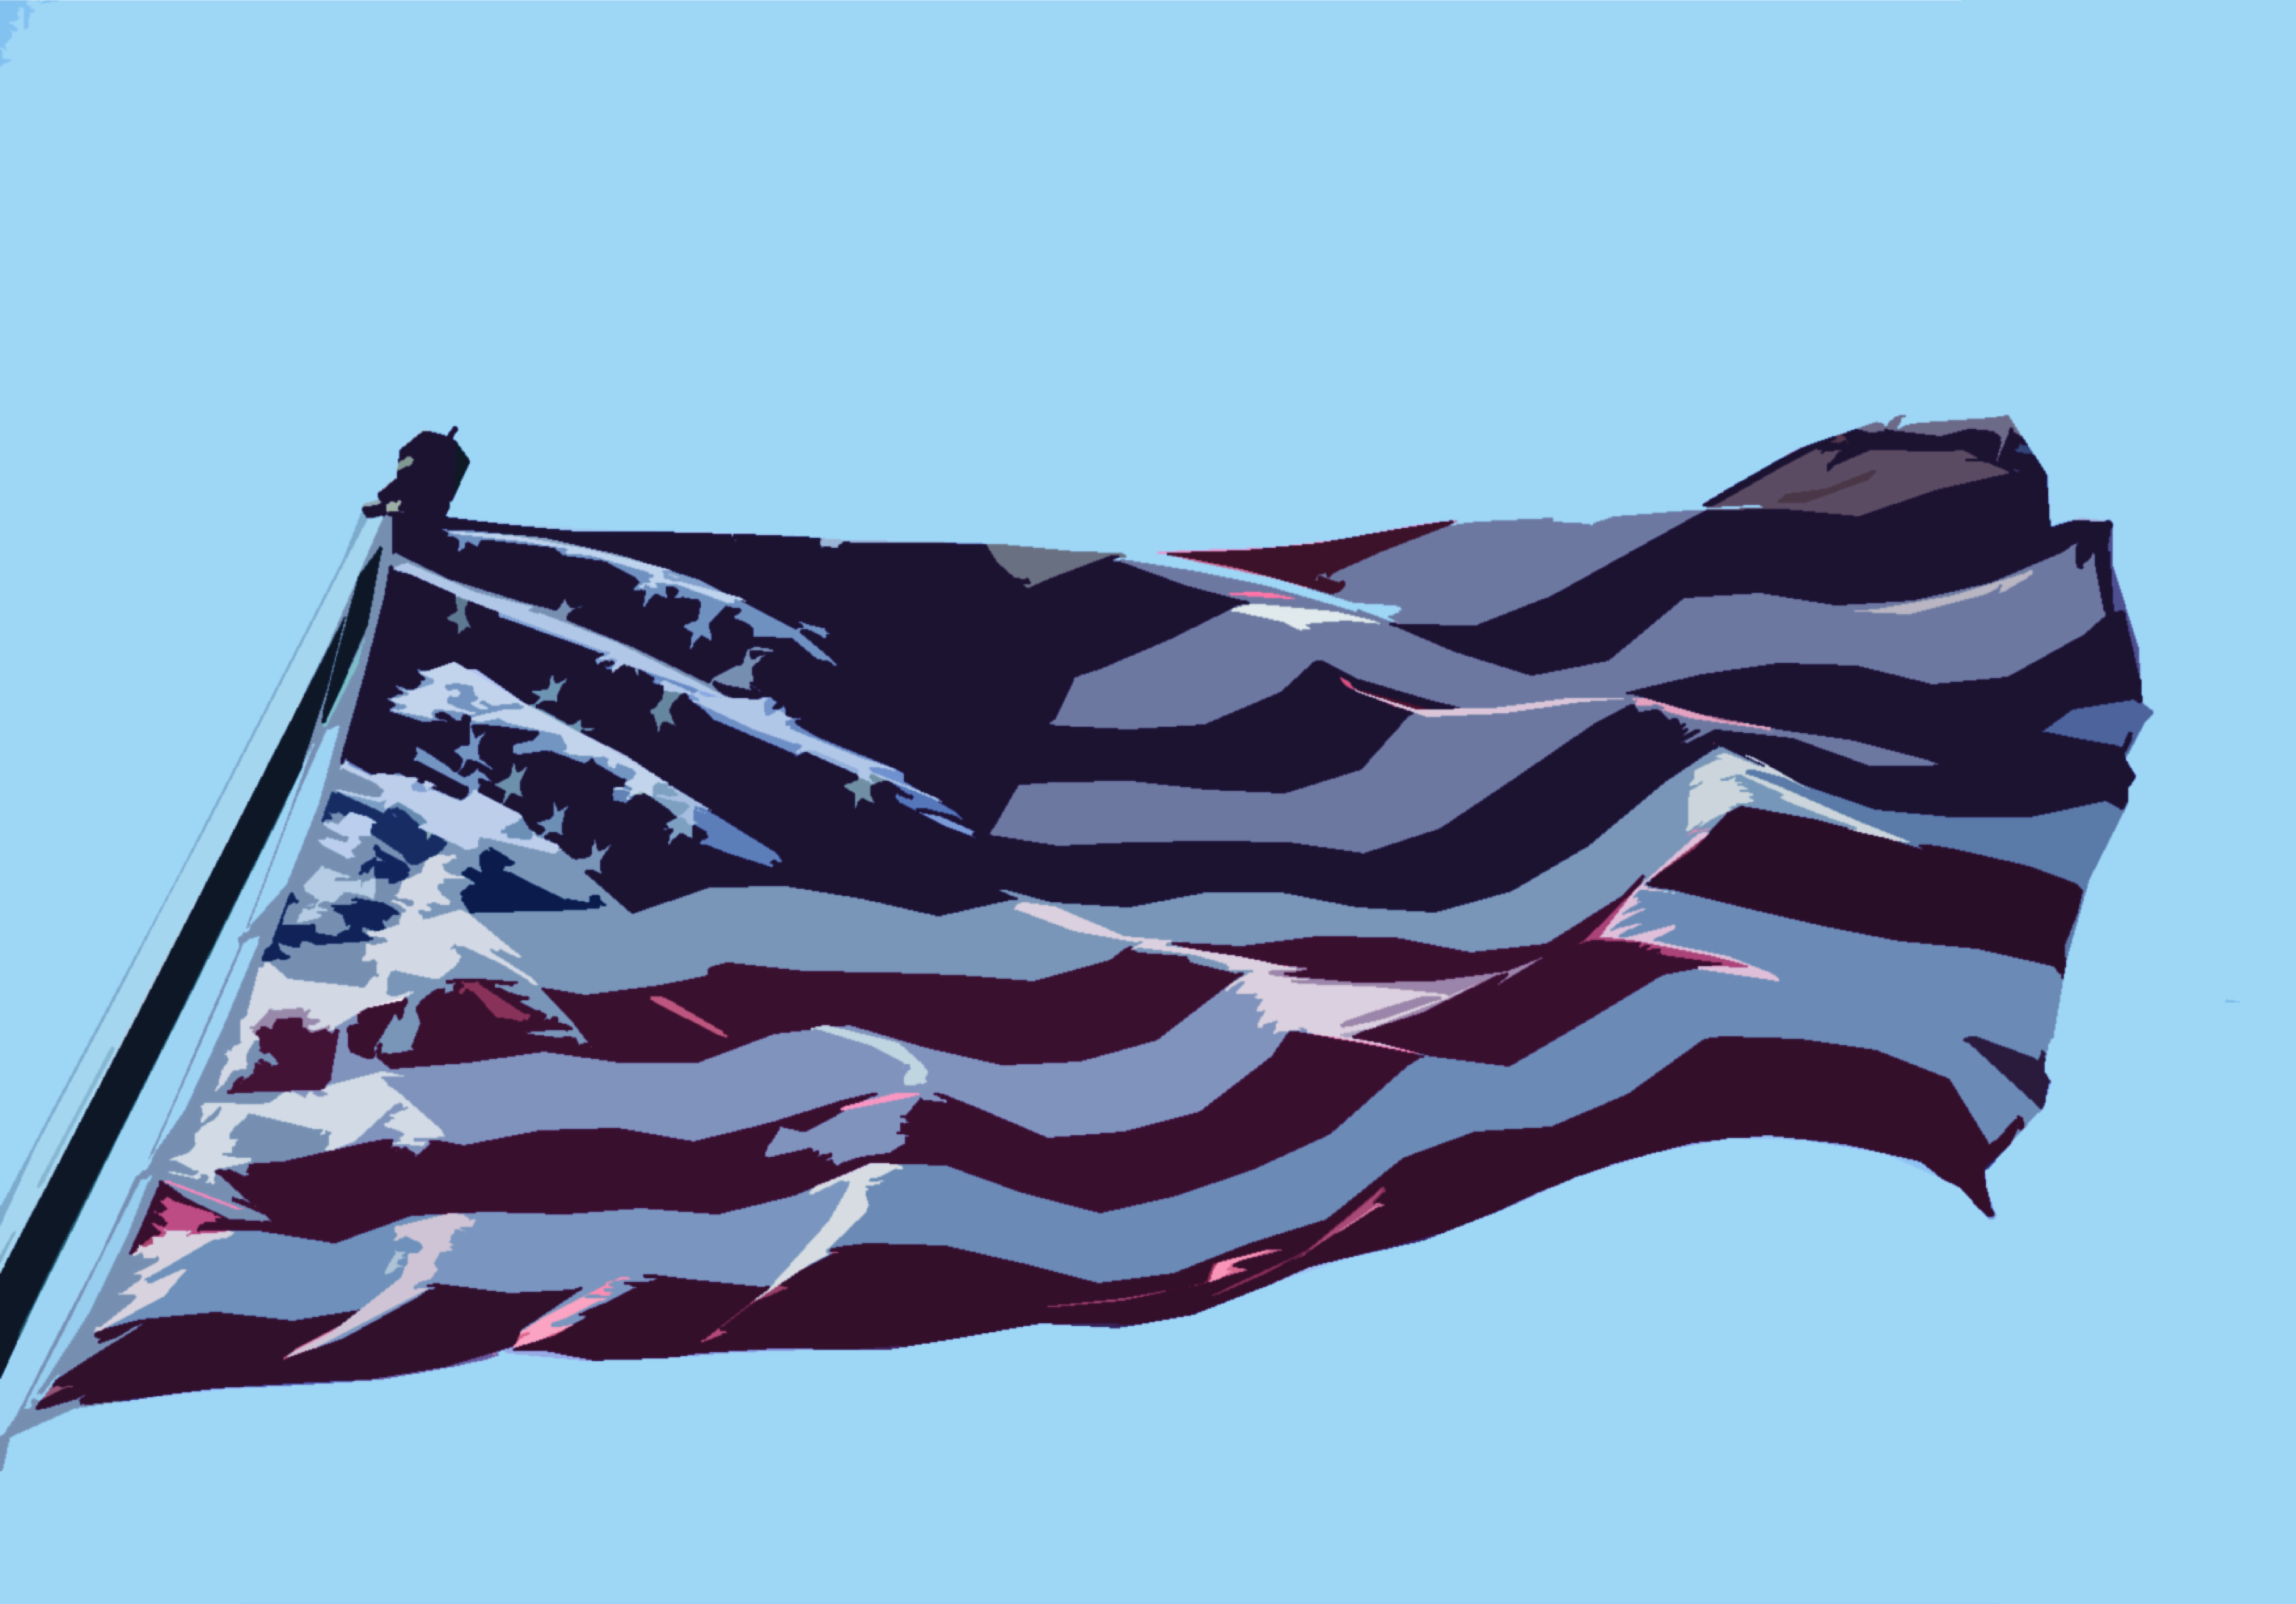 An illustration of an American flag waving in the air.